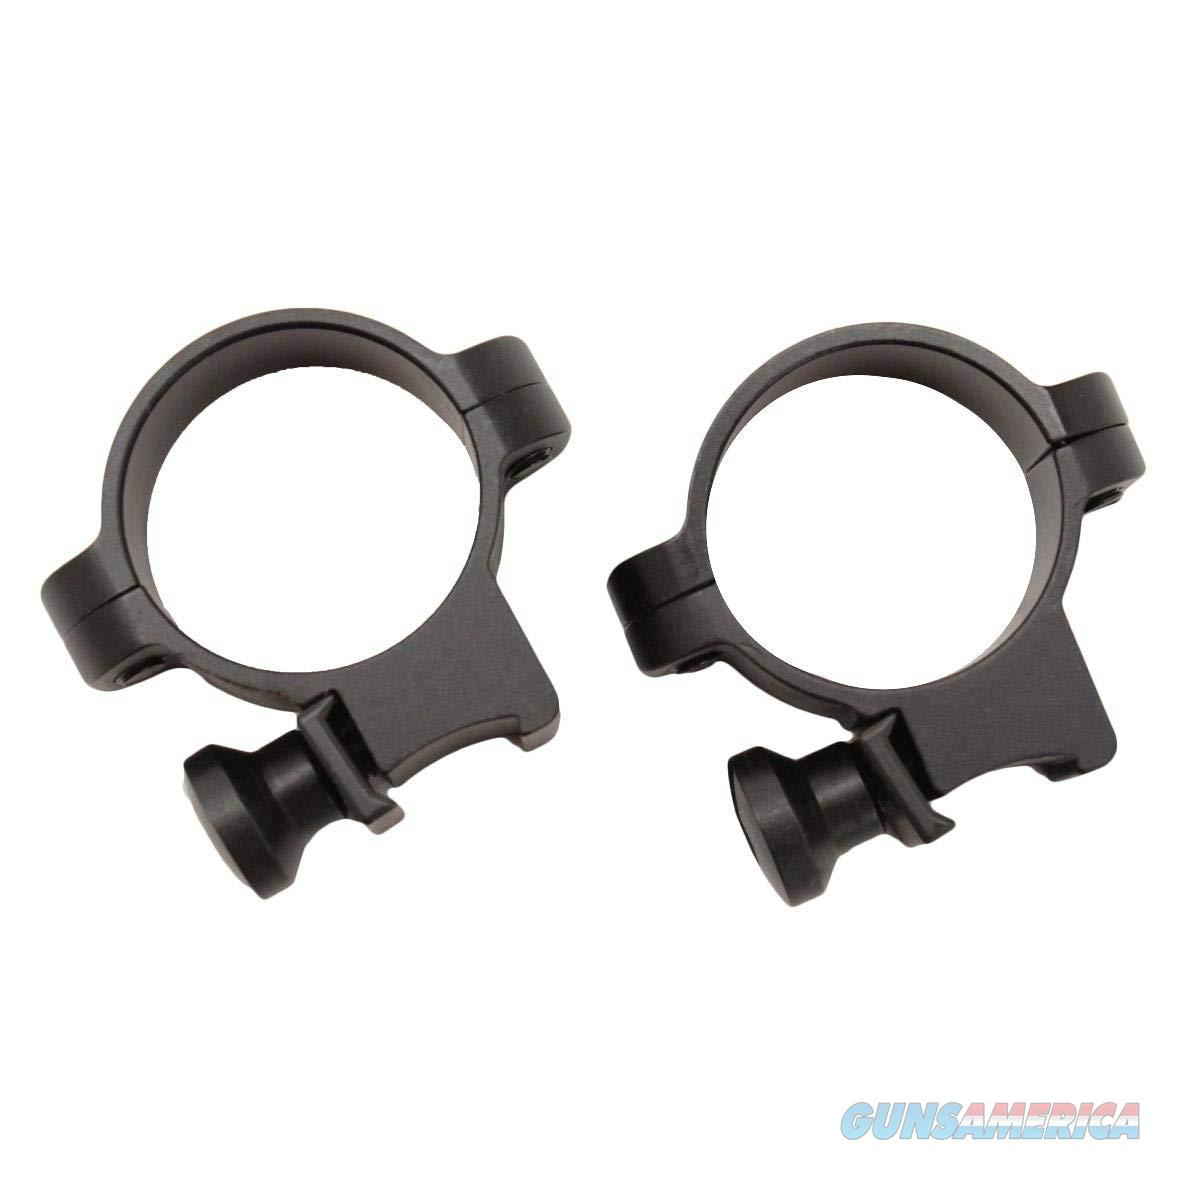 "Burris 1"" Rimfire Scope Rings, Medium, 22 Grooved, Black - 420071  Non-Guns > Charity Raffles"